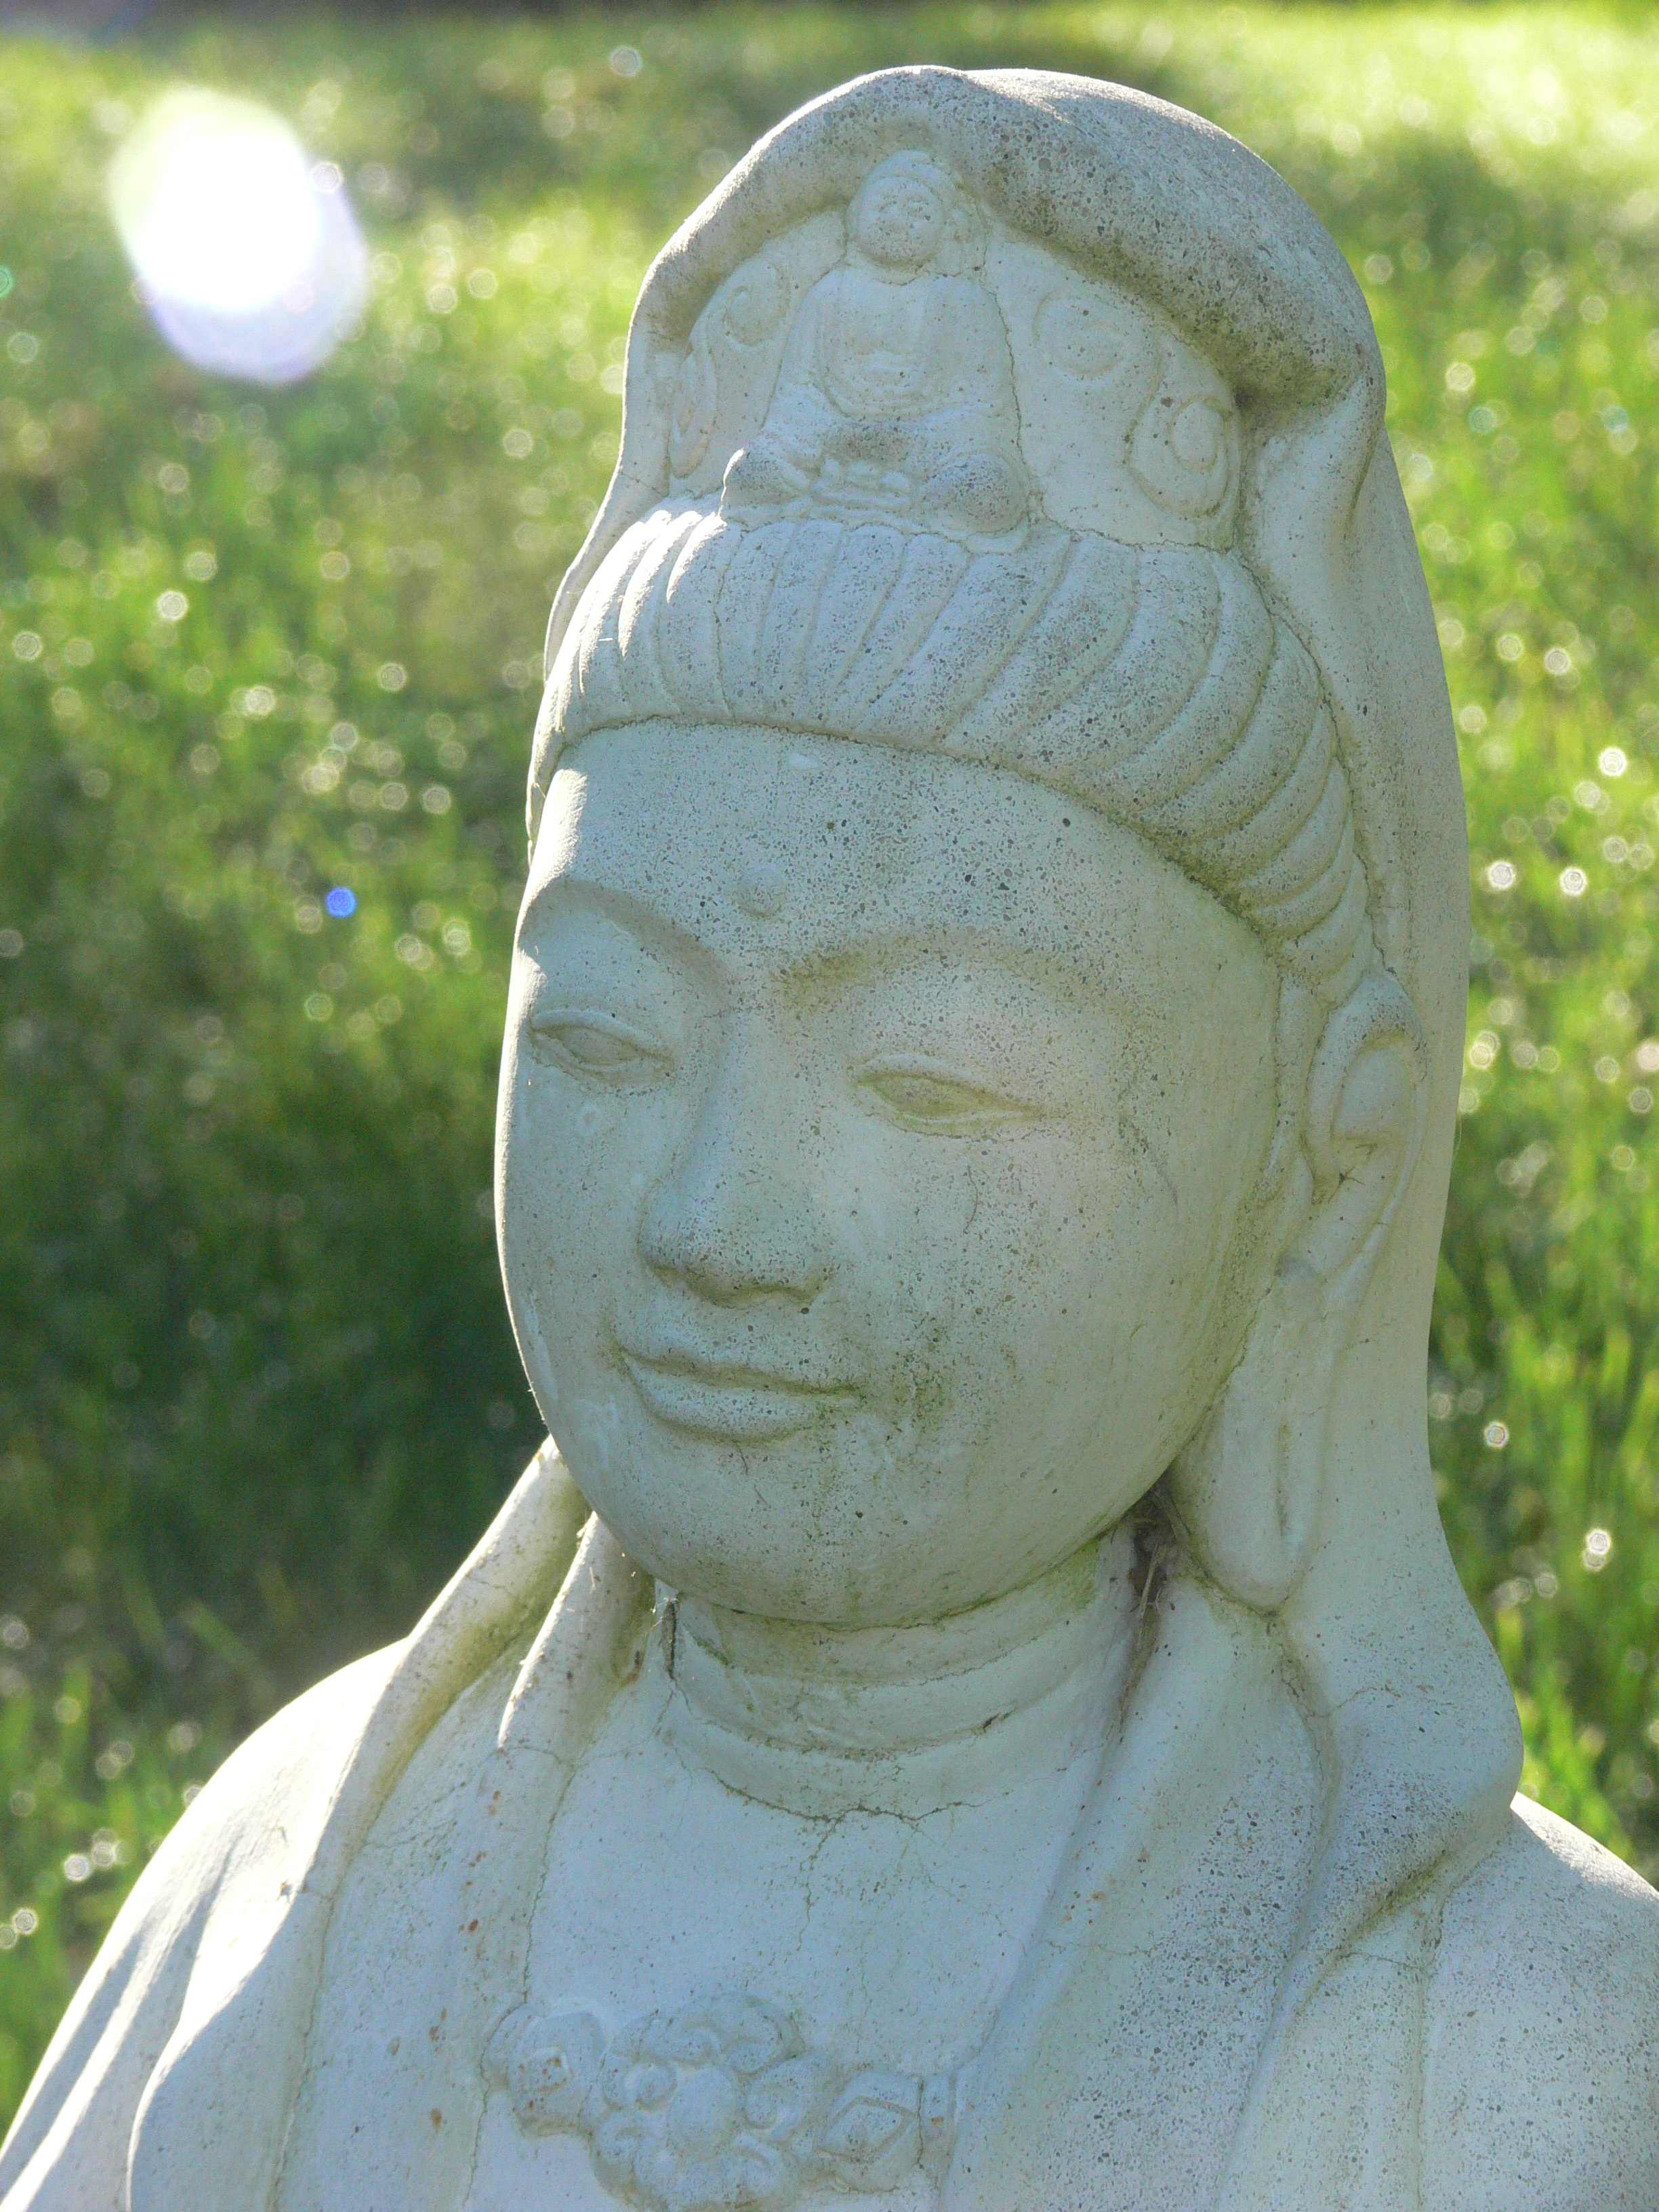 Kuan Yin sunbeam